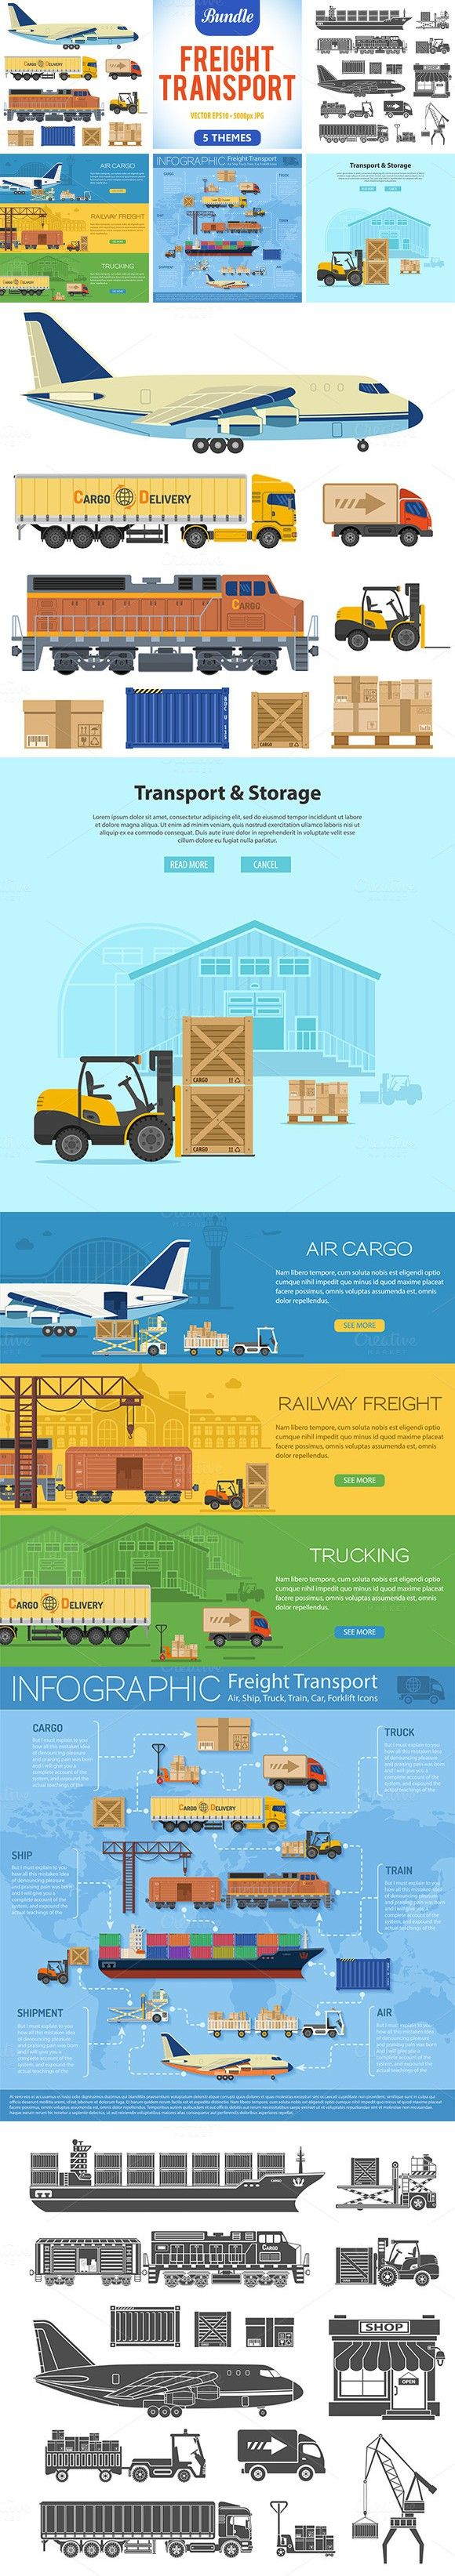 Freight Transport. Business Infographic